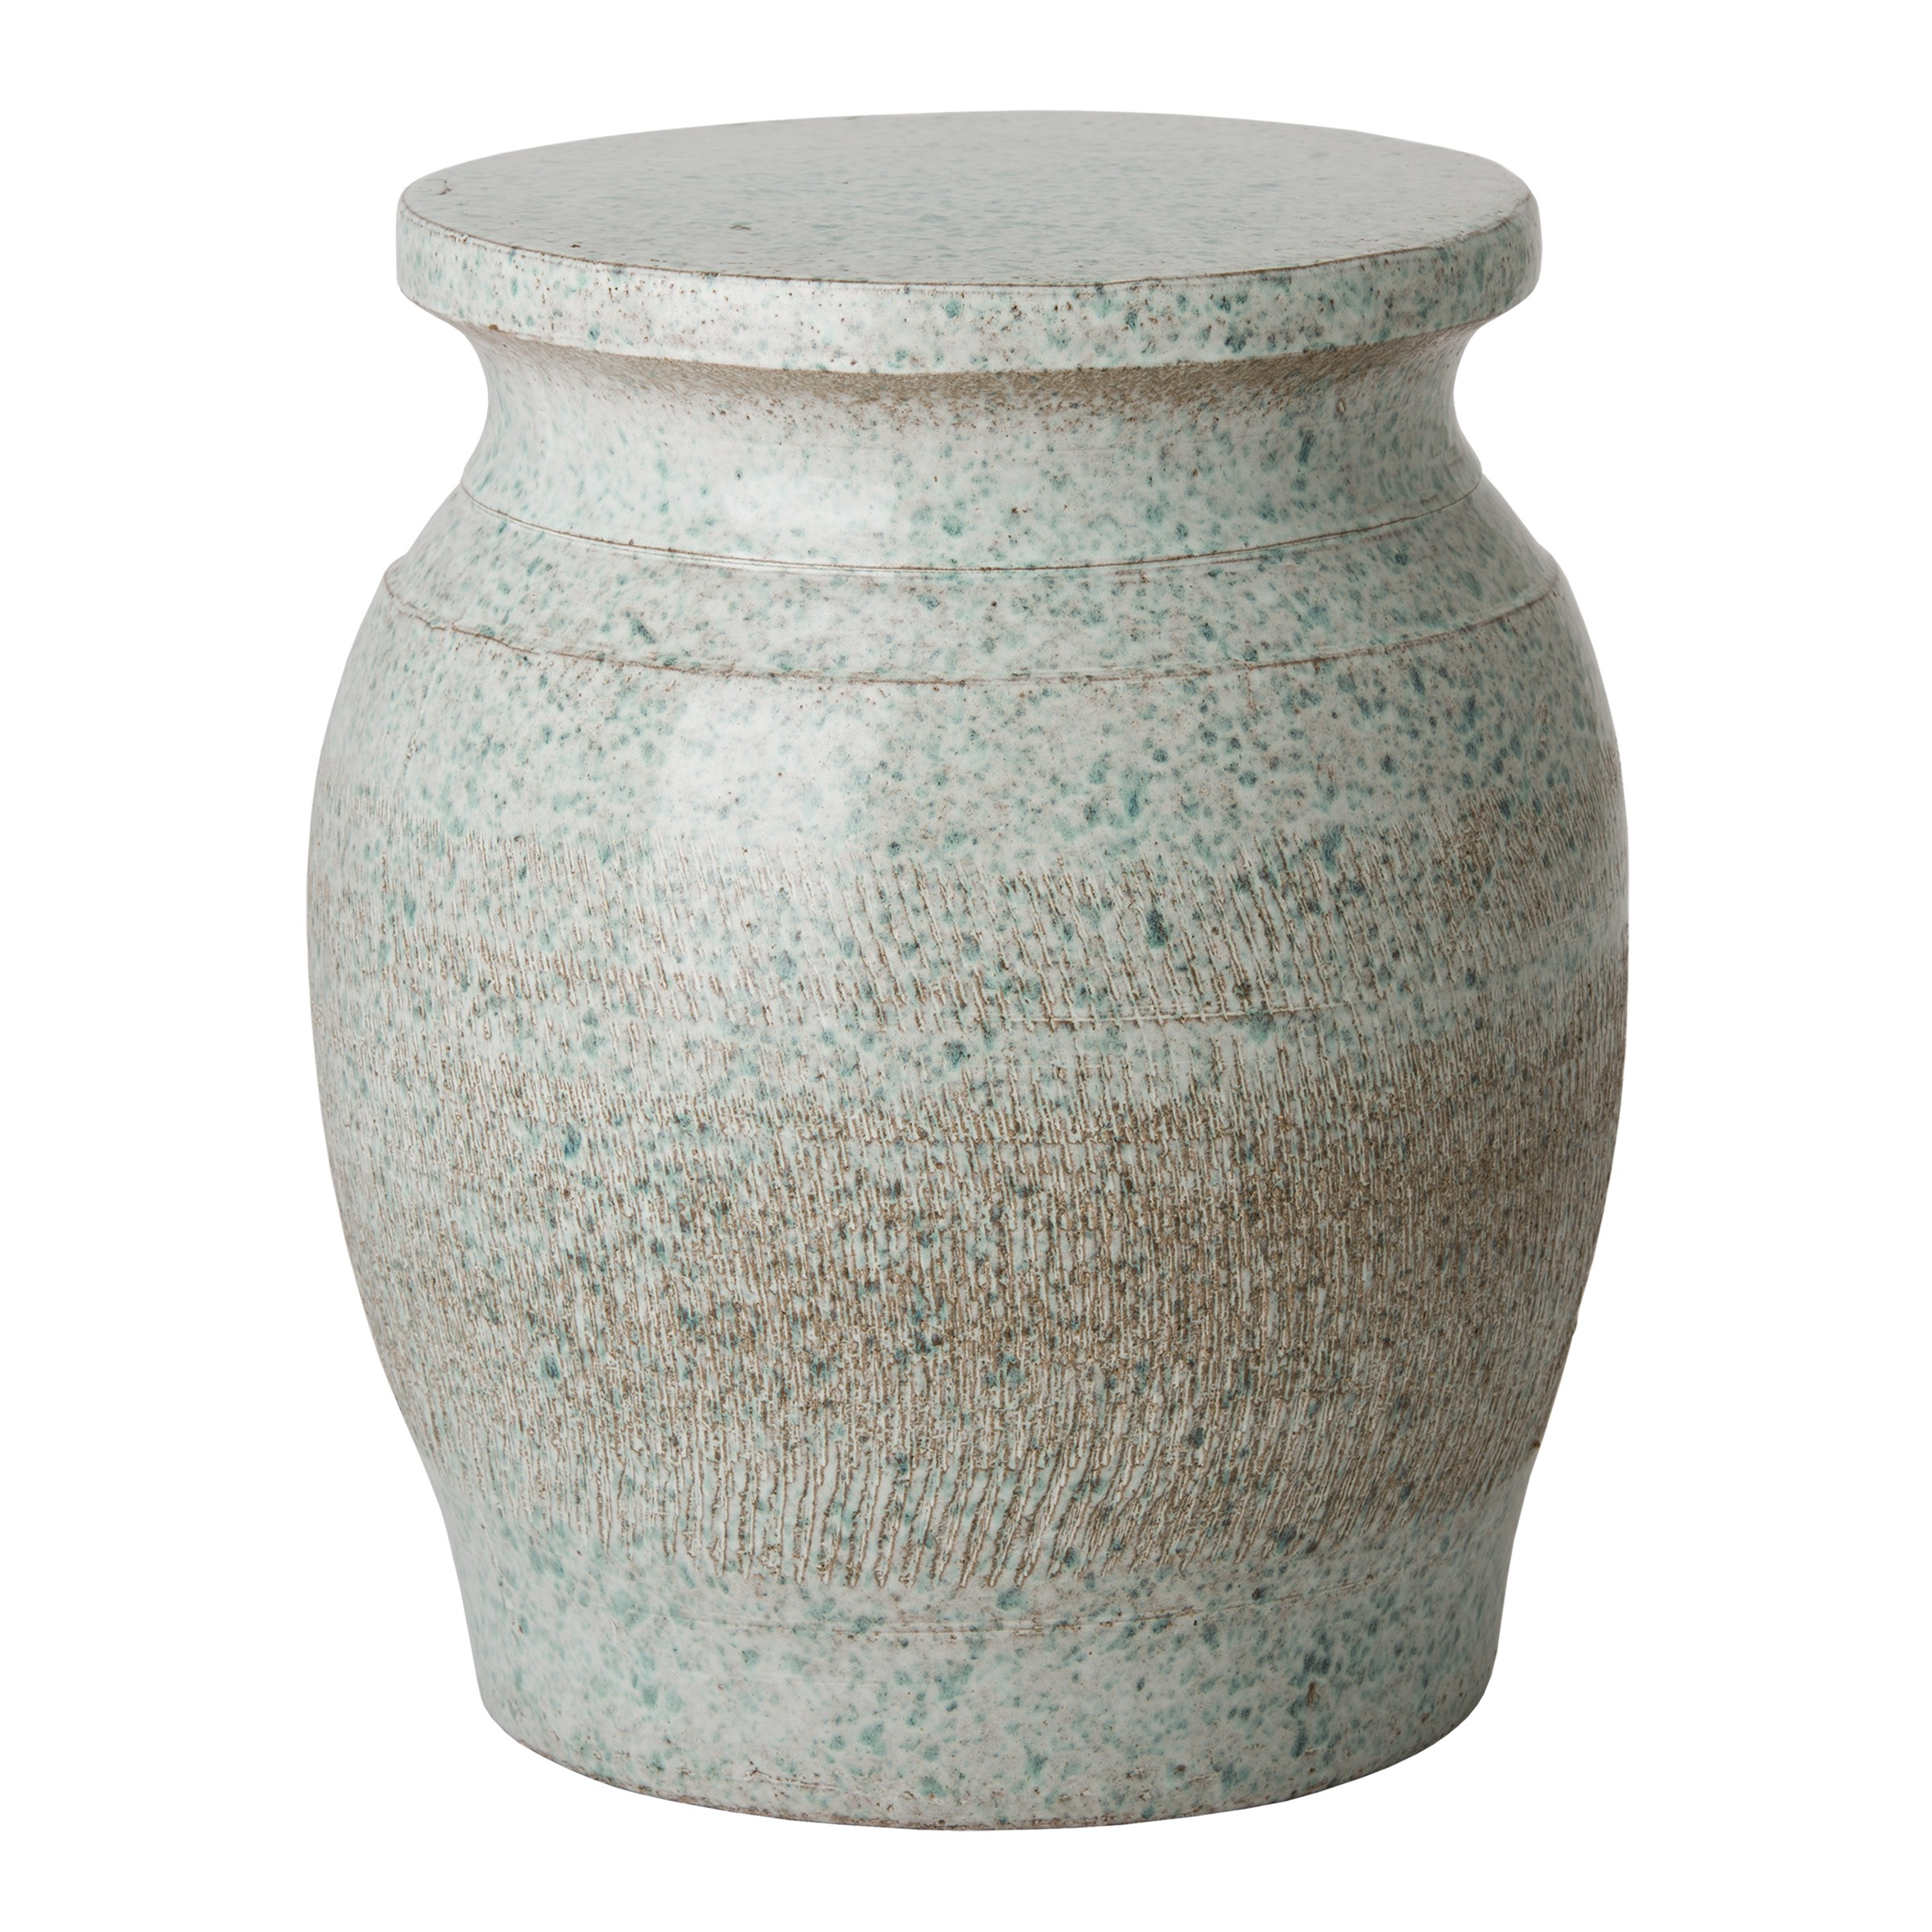 ceramic garden stools finegardenproducts stool accent table large koji coastal splash glaze half round with drawers outside storage cabinets butler jcpenney console west elm mid